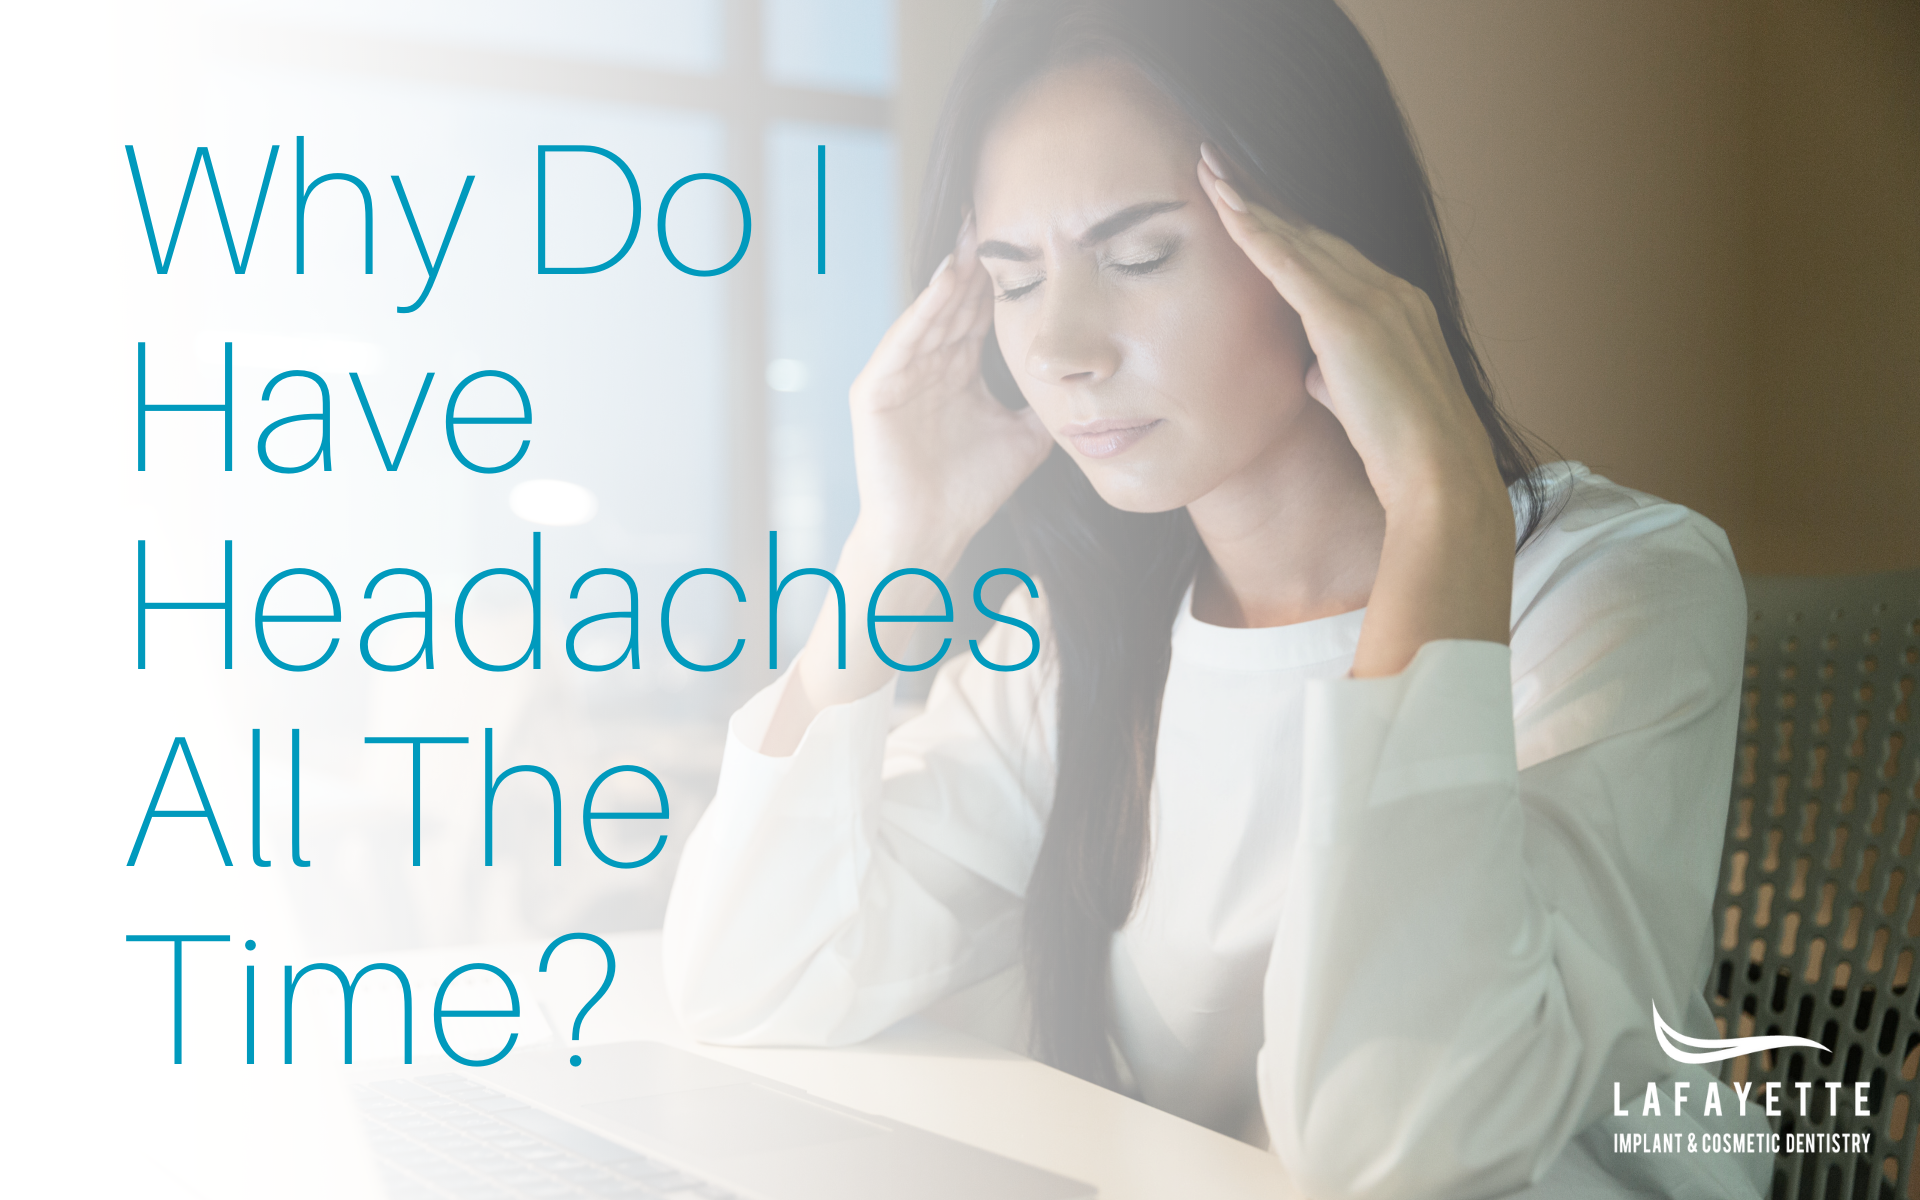 Why Do I Have Headaches All The Time?